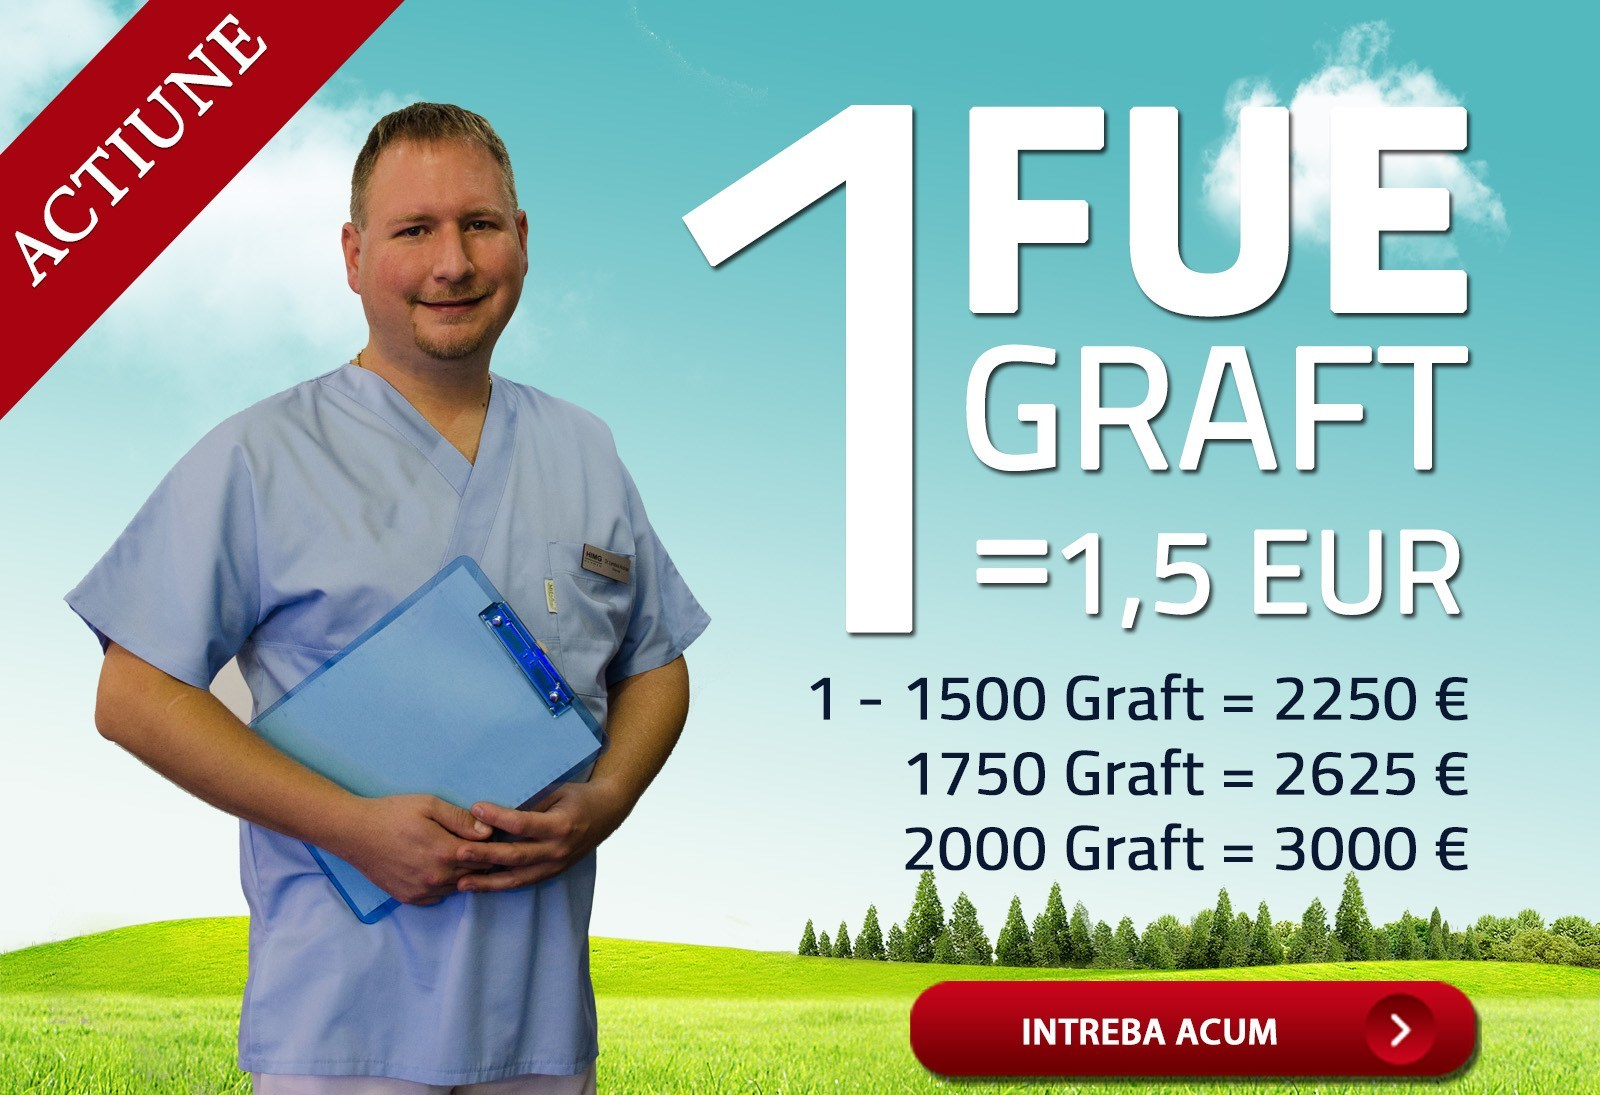 PHAEYDE Action: 1 FUE GRAFT = 1 EUR